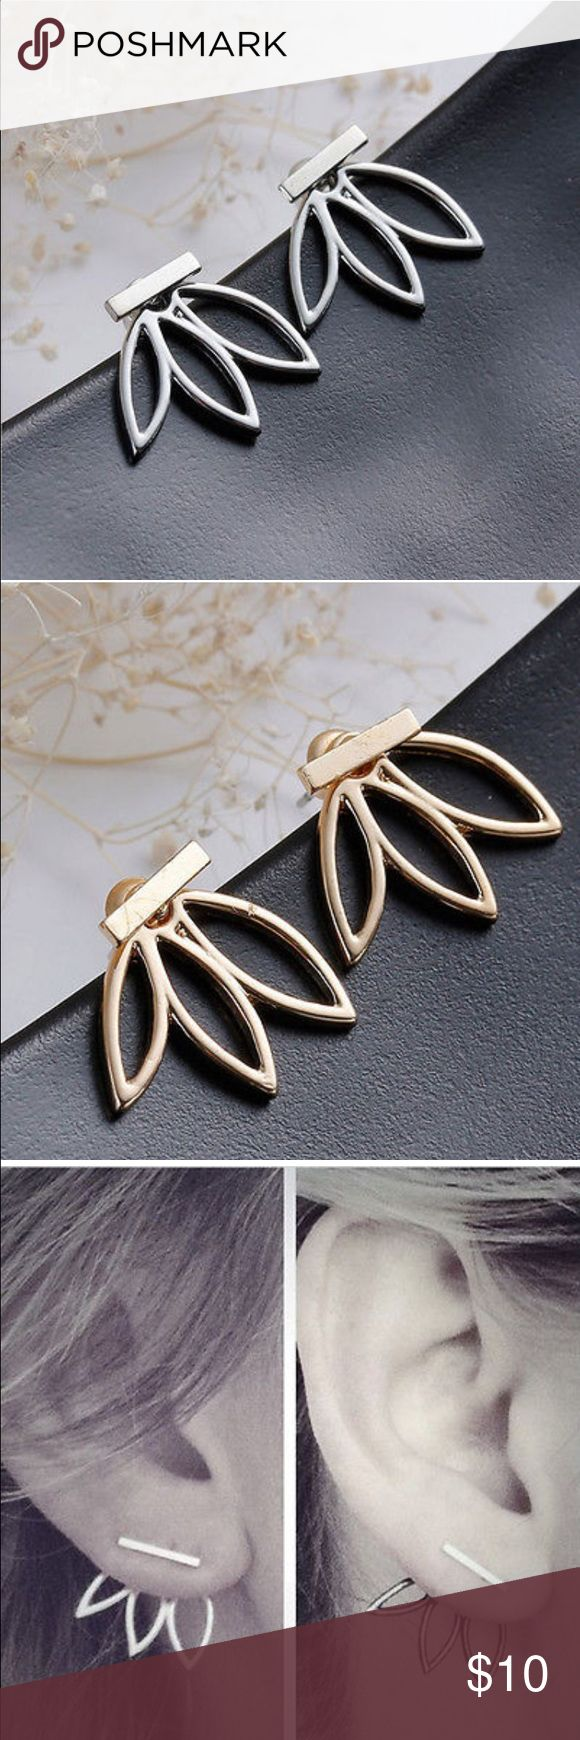 COMING SOON❗️ Metal lotus earrings Gold and silver metal earrings. Will update you upon receipt of items. Jewelry Earrings